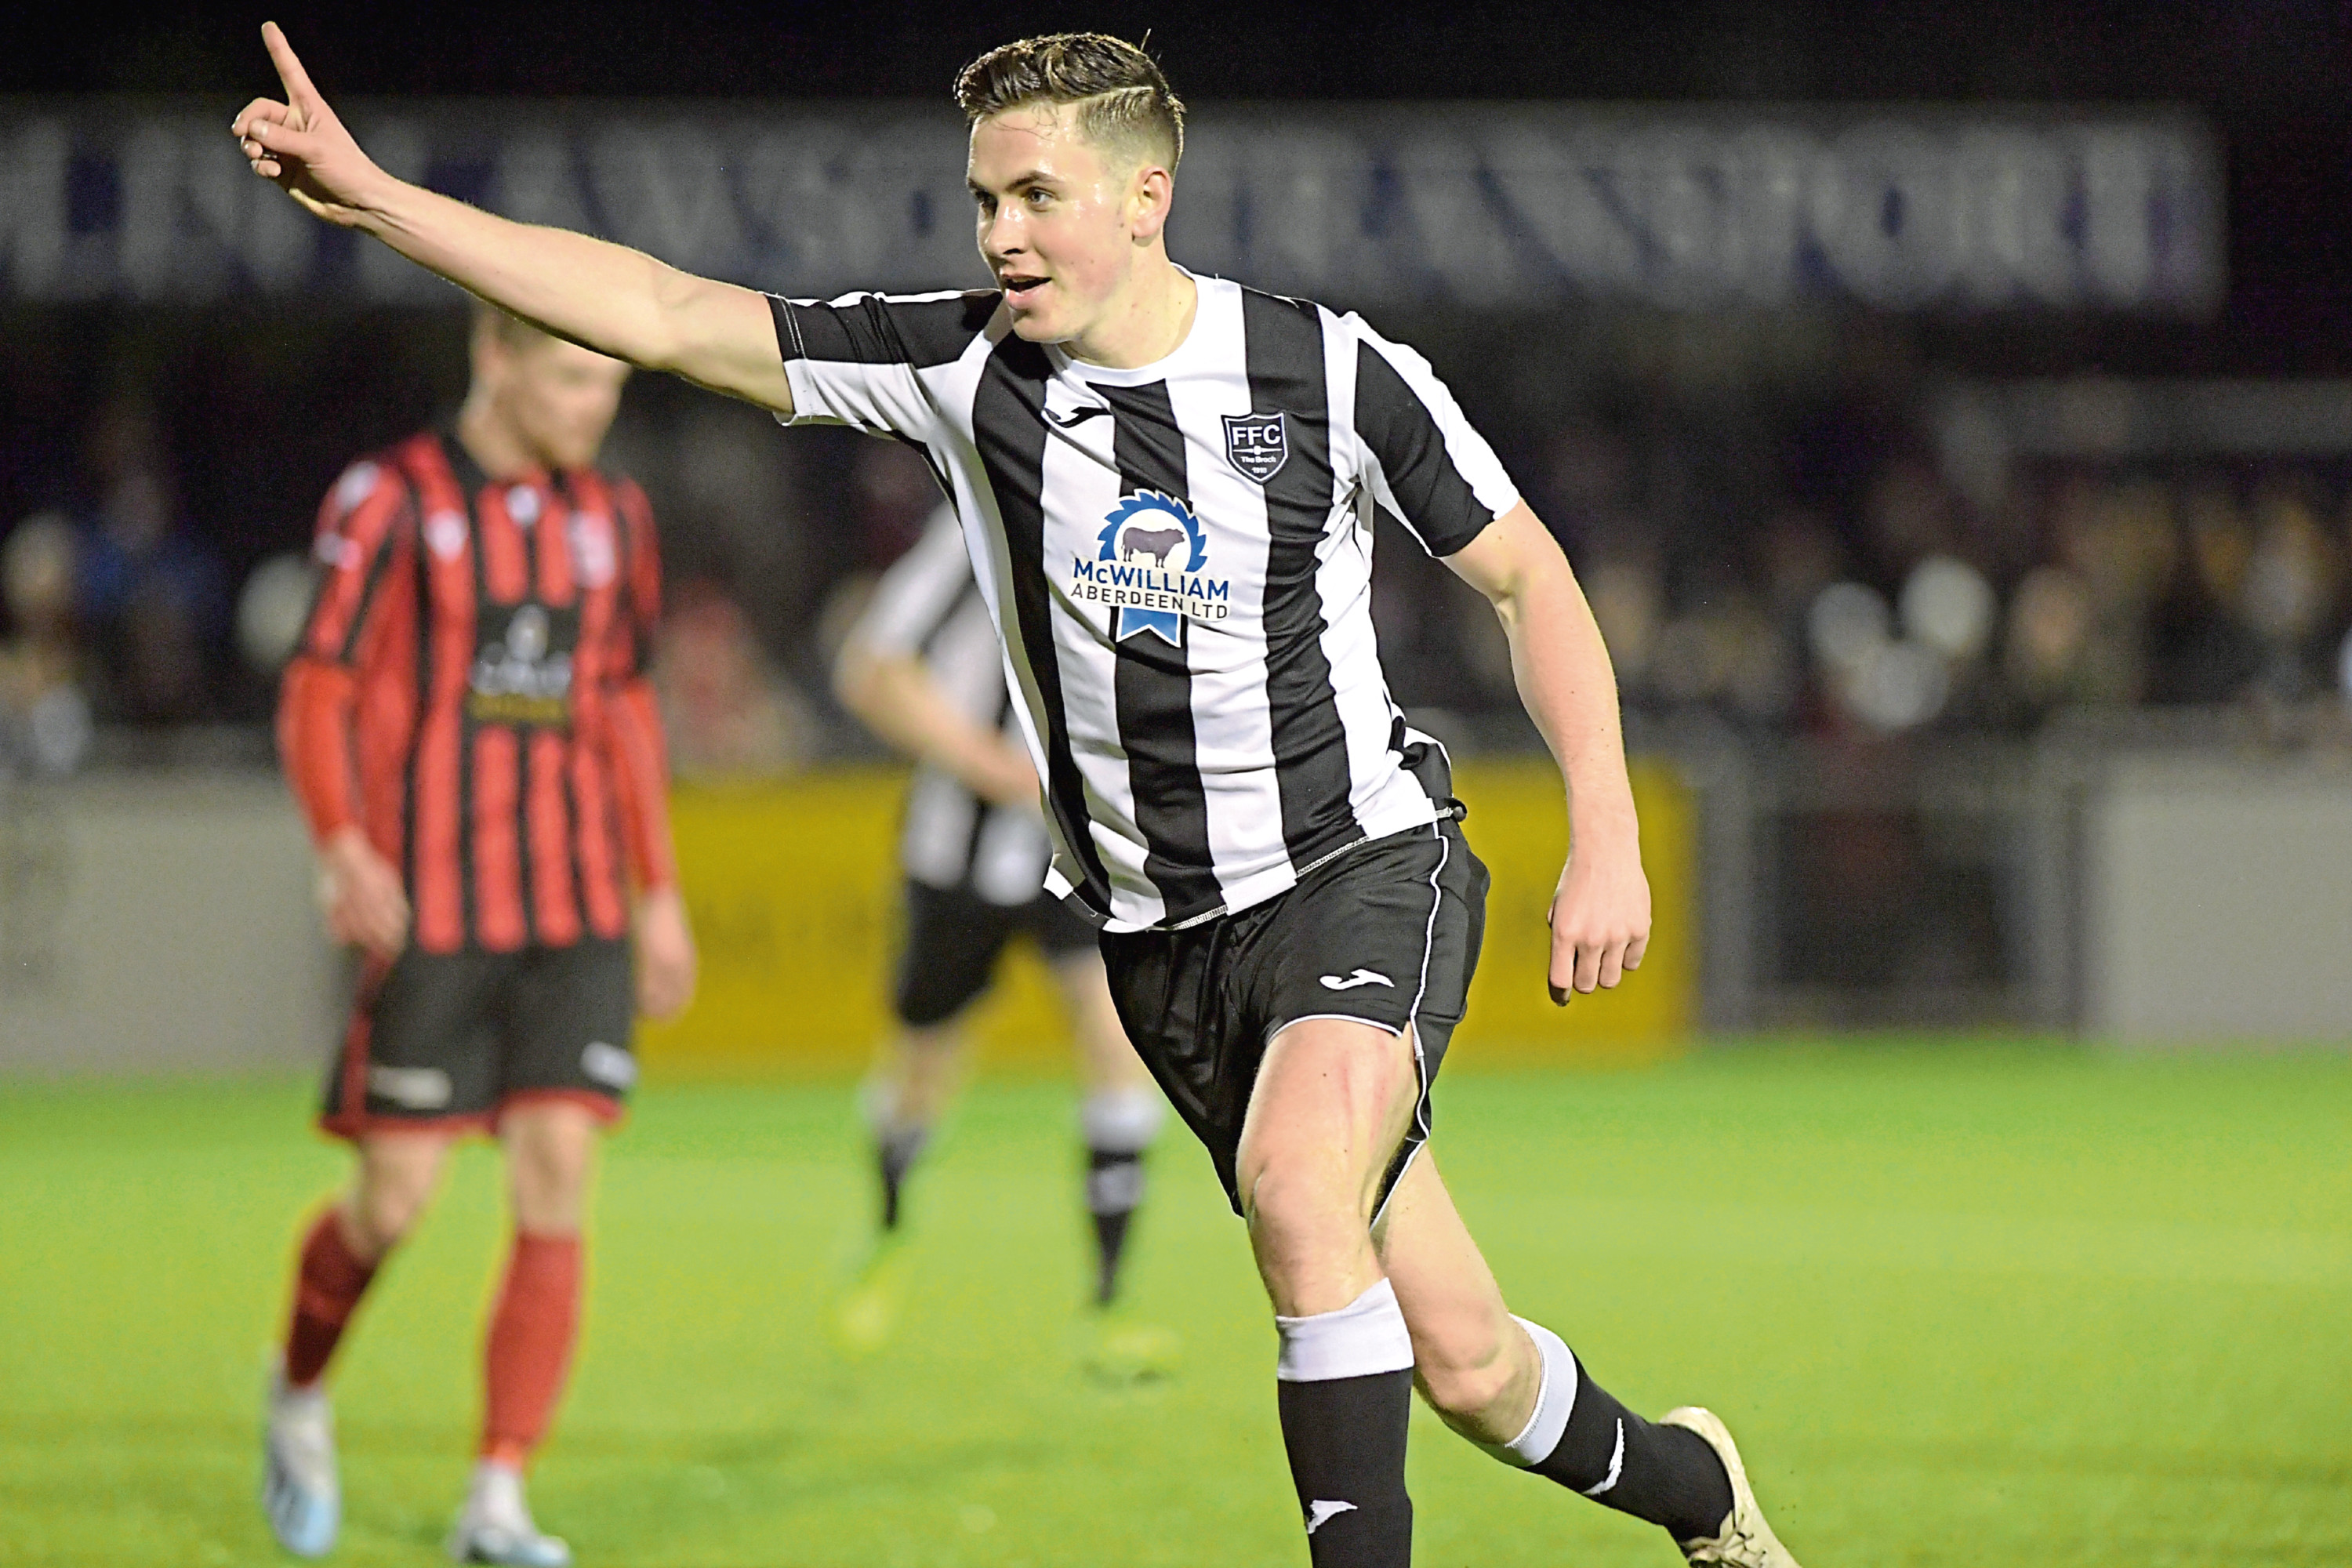 Paull Campbell has been one of Fraserburgh's main goalscorers in recent times. Picture by Kath Flannery